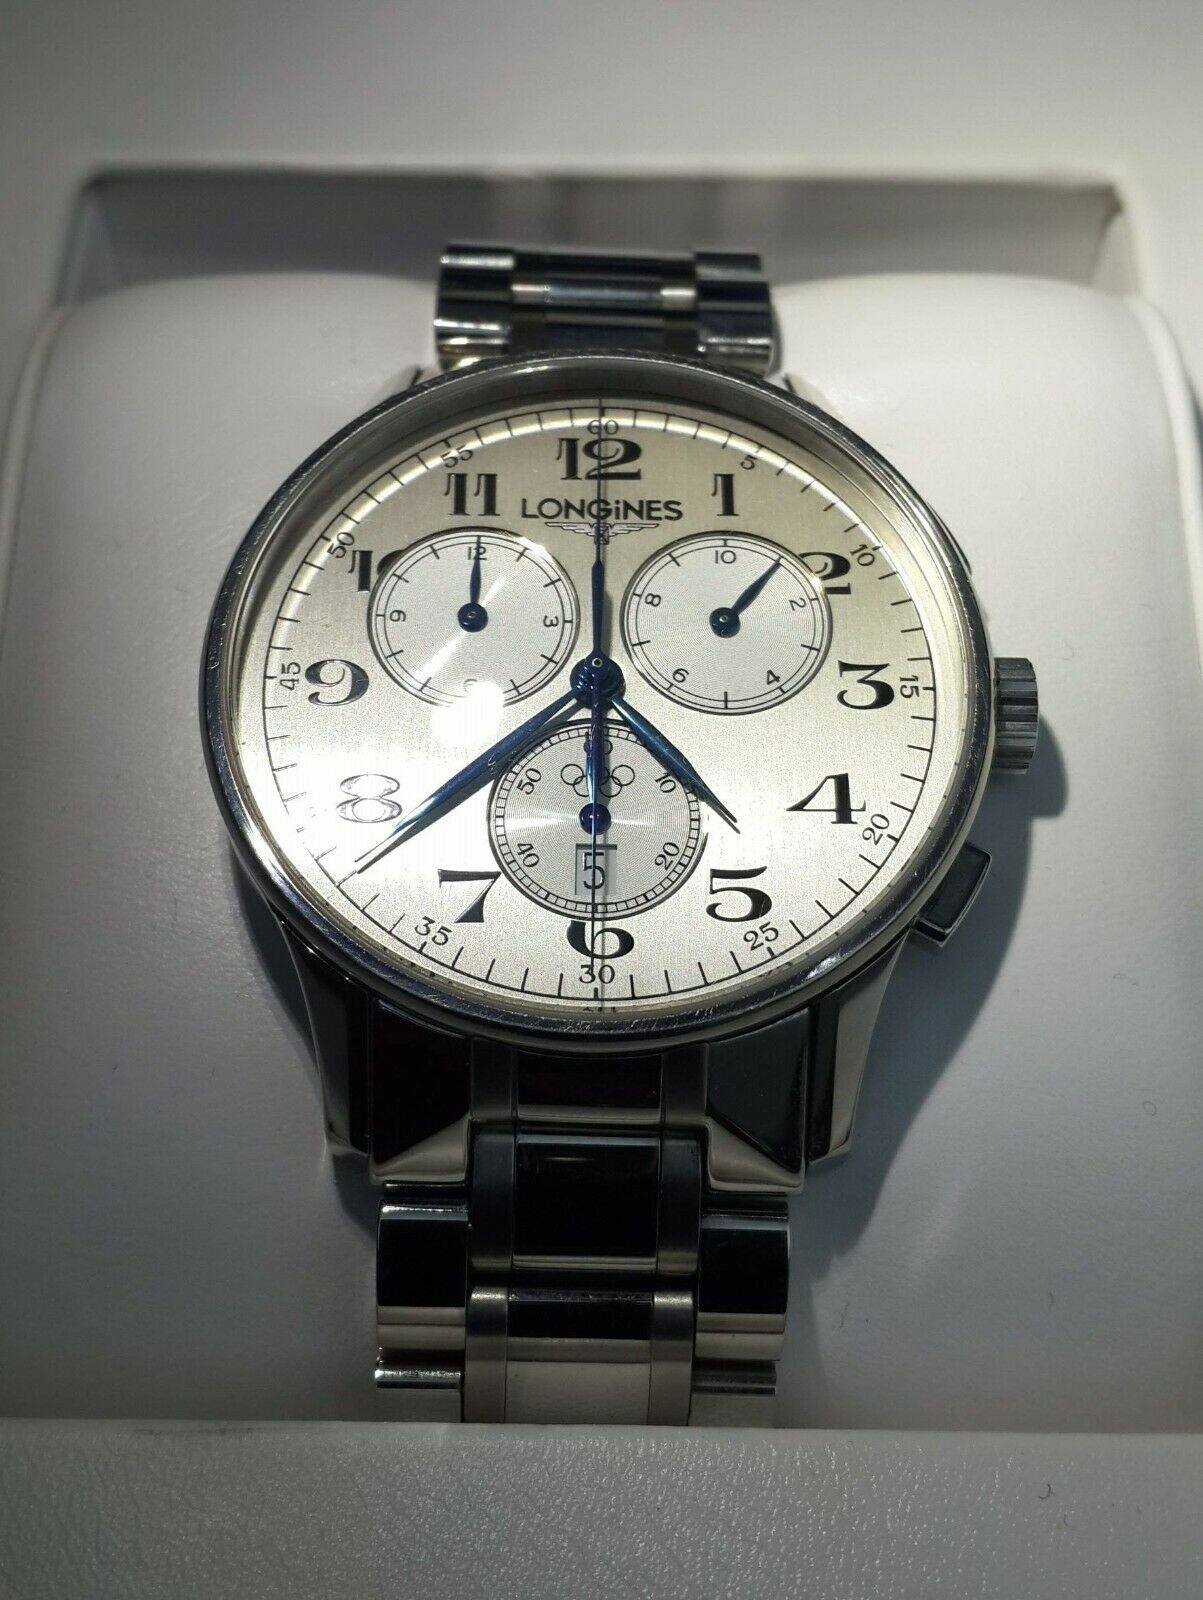 Primary image for Longines Olympic Collection Chronograph  Mens Watch Model:L2.649.4.73.7